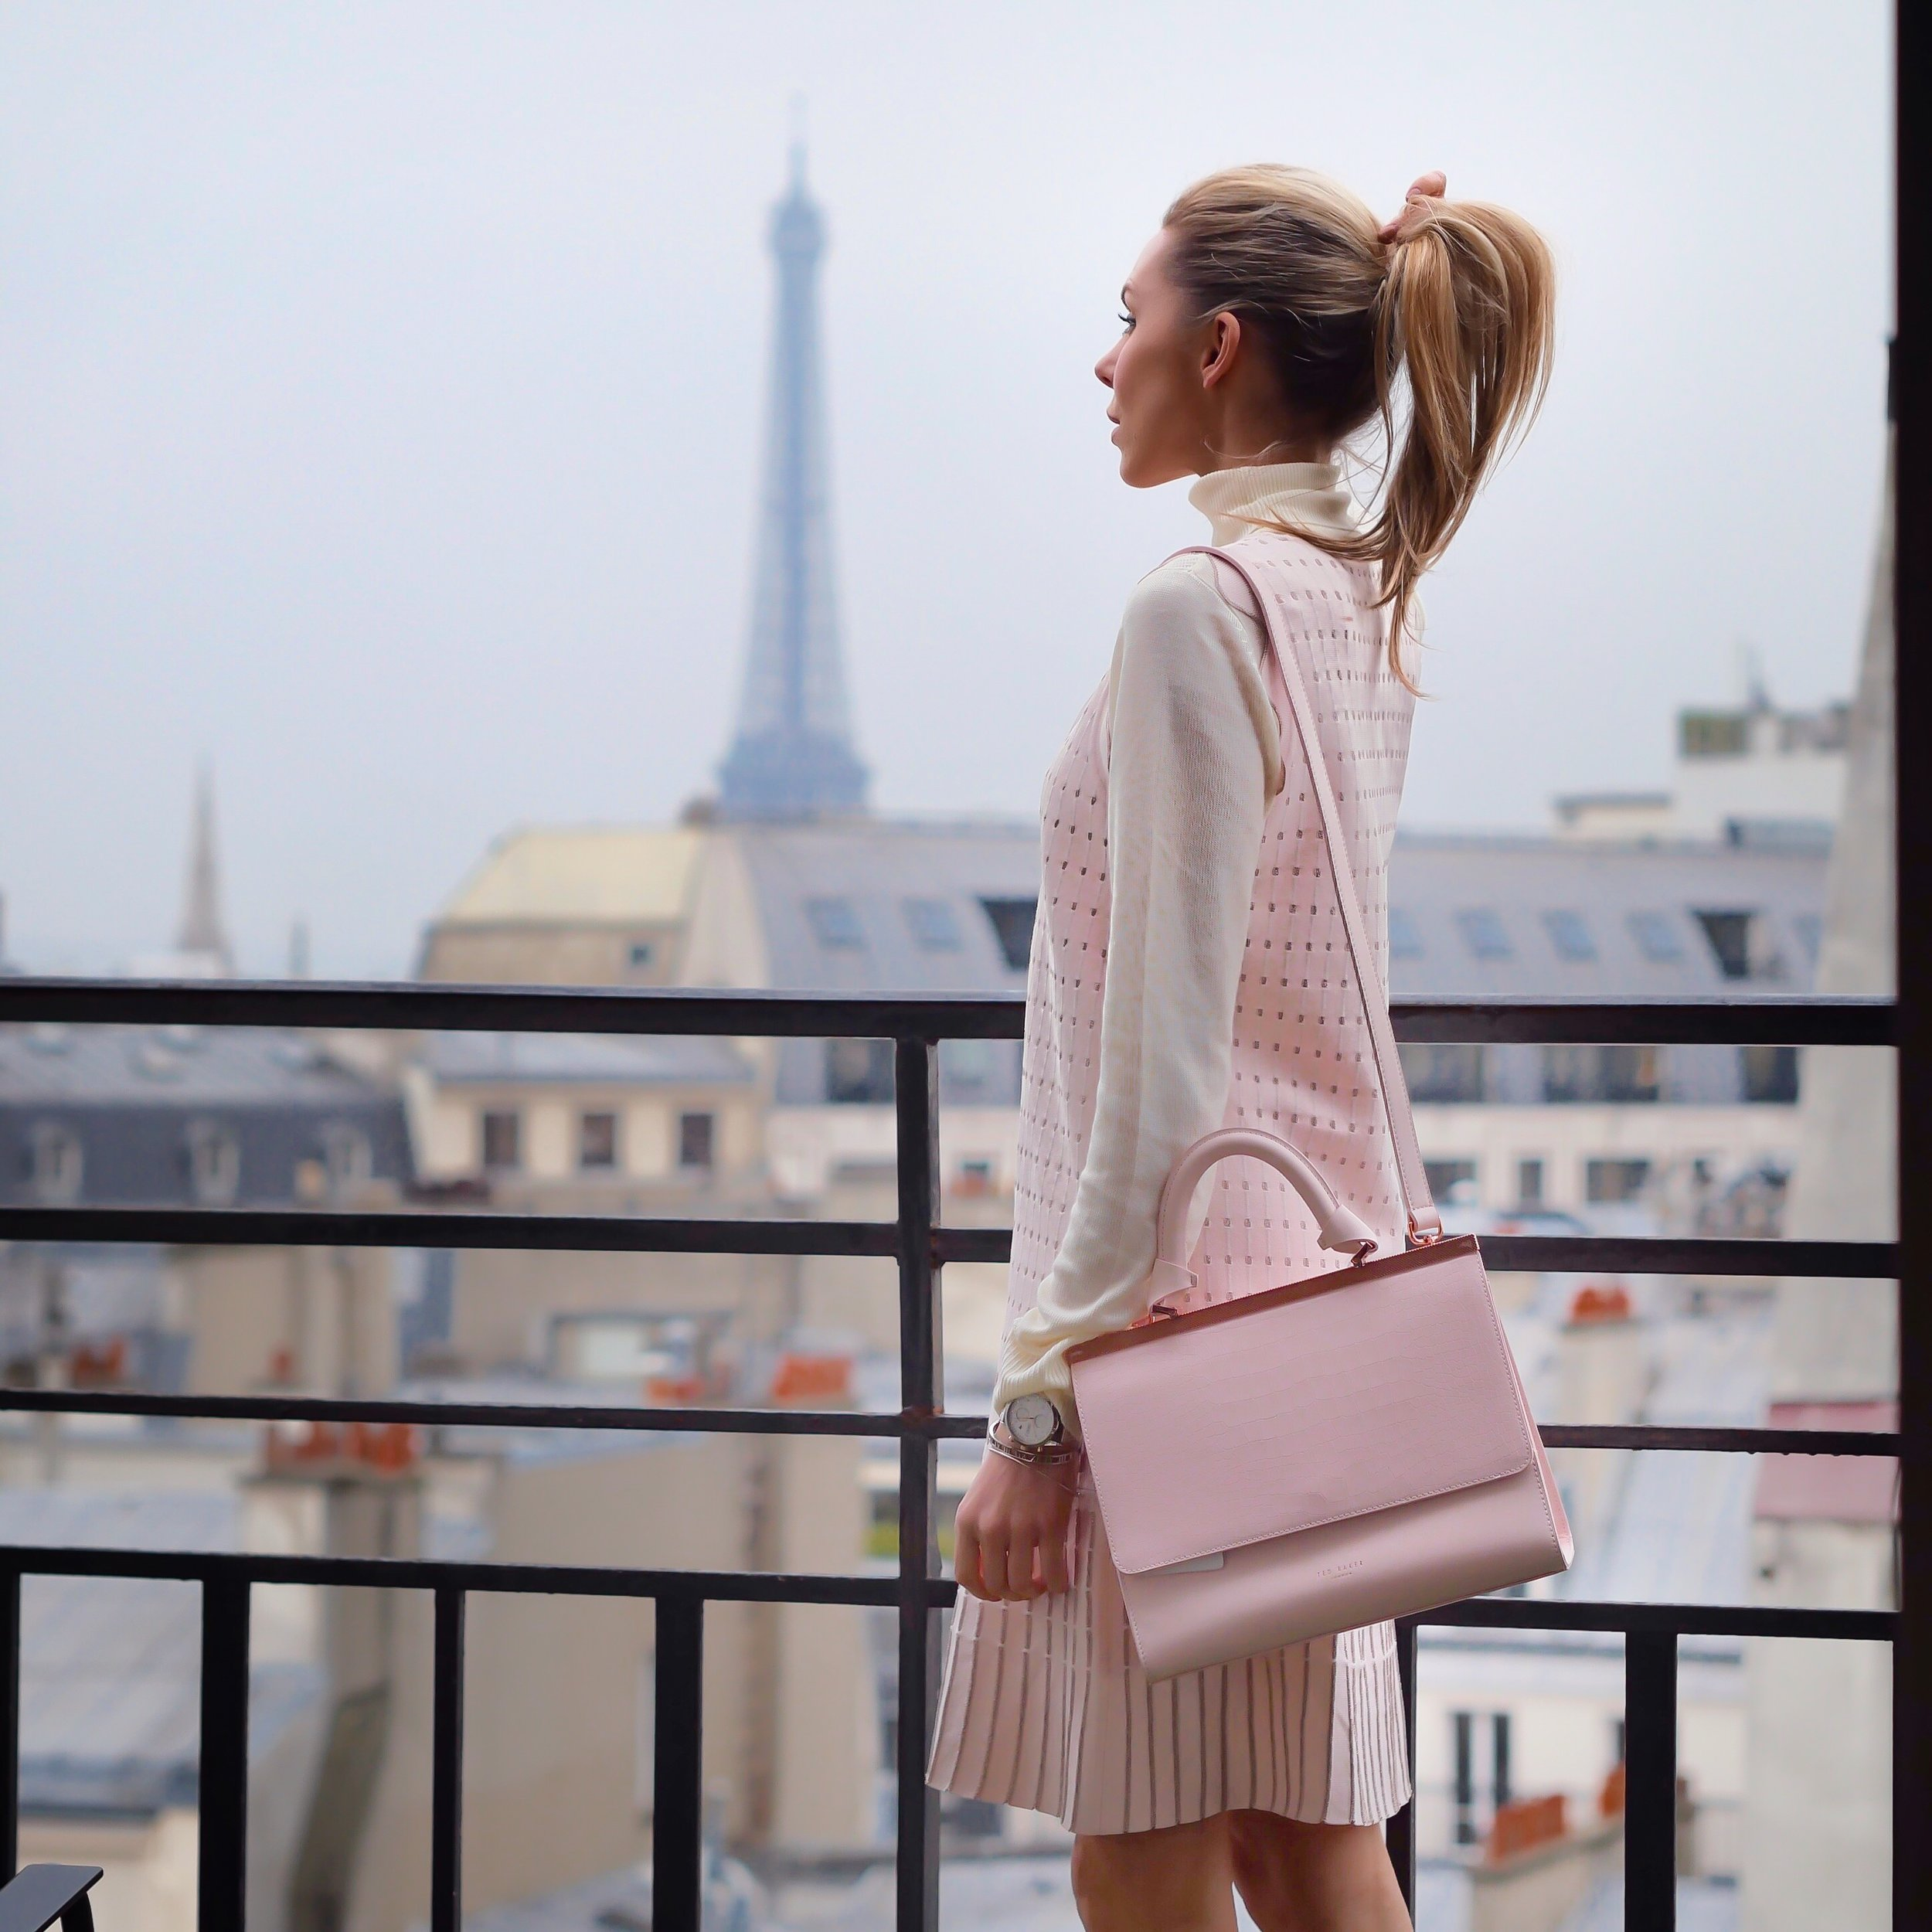 paris, travel, haul, affordable fashion, streetstyle, inspiration, what to wear, fashion, lookbook, style, fashion blogger, laura blair, youtuber, london fashion girl, HOTEL HÔTEL ETOILE SAINT HONORÉ, happy culture, ted baker